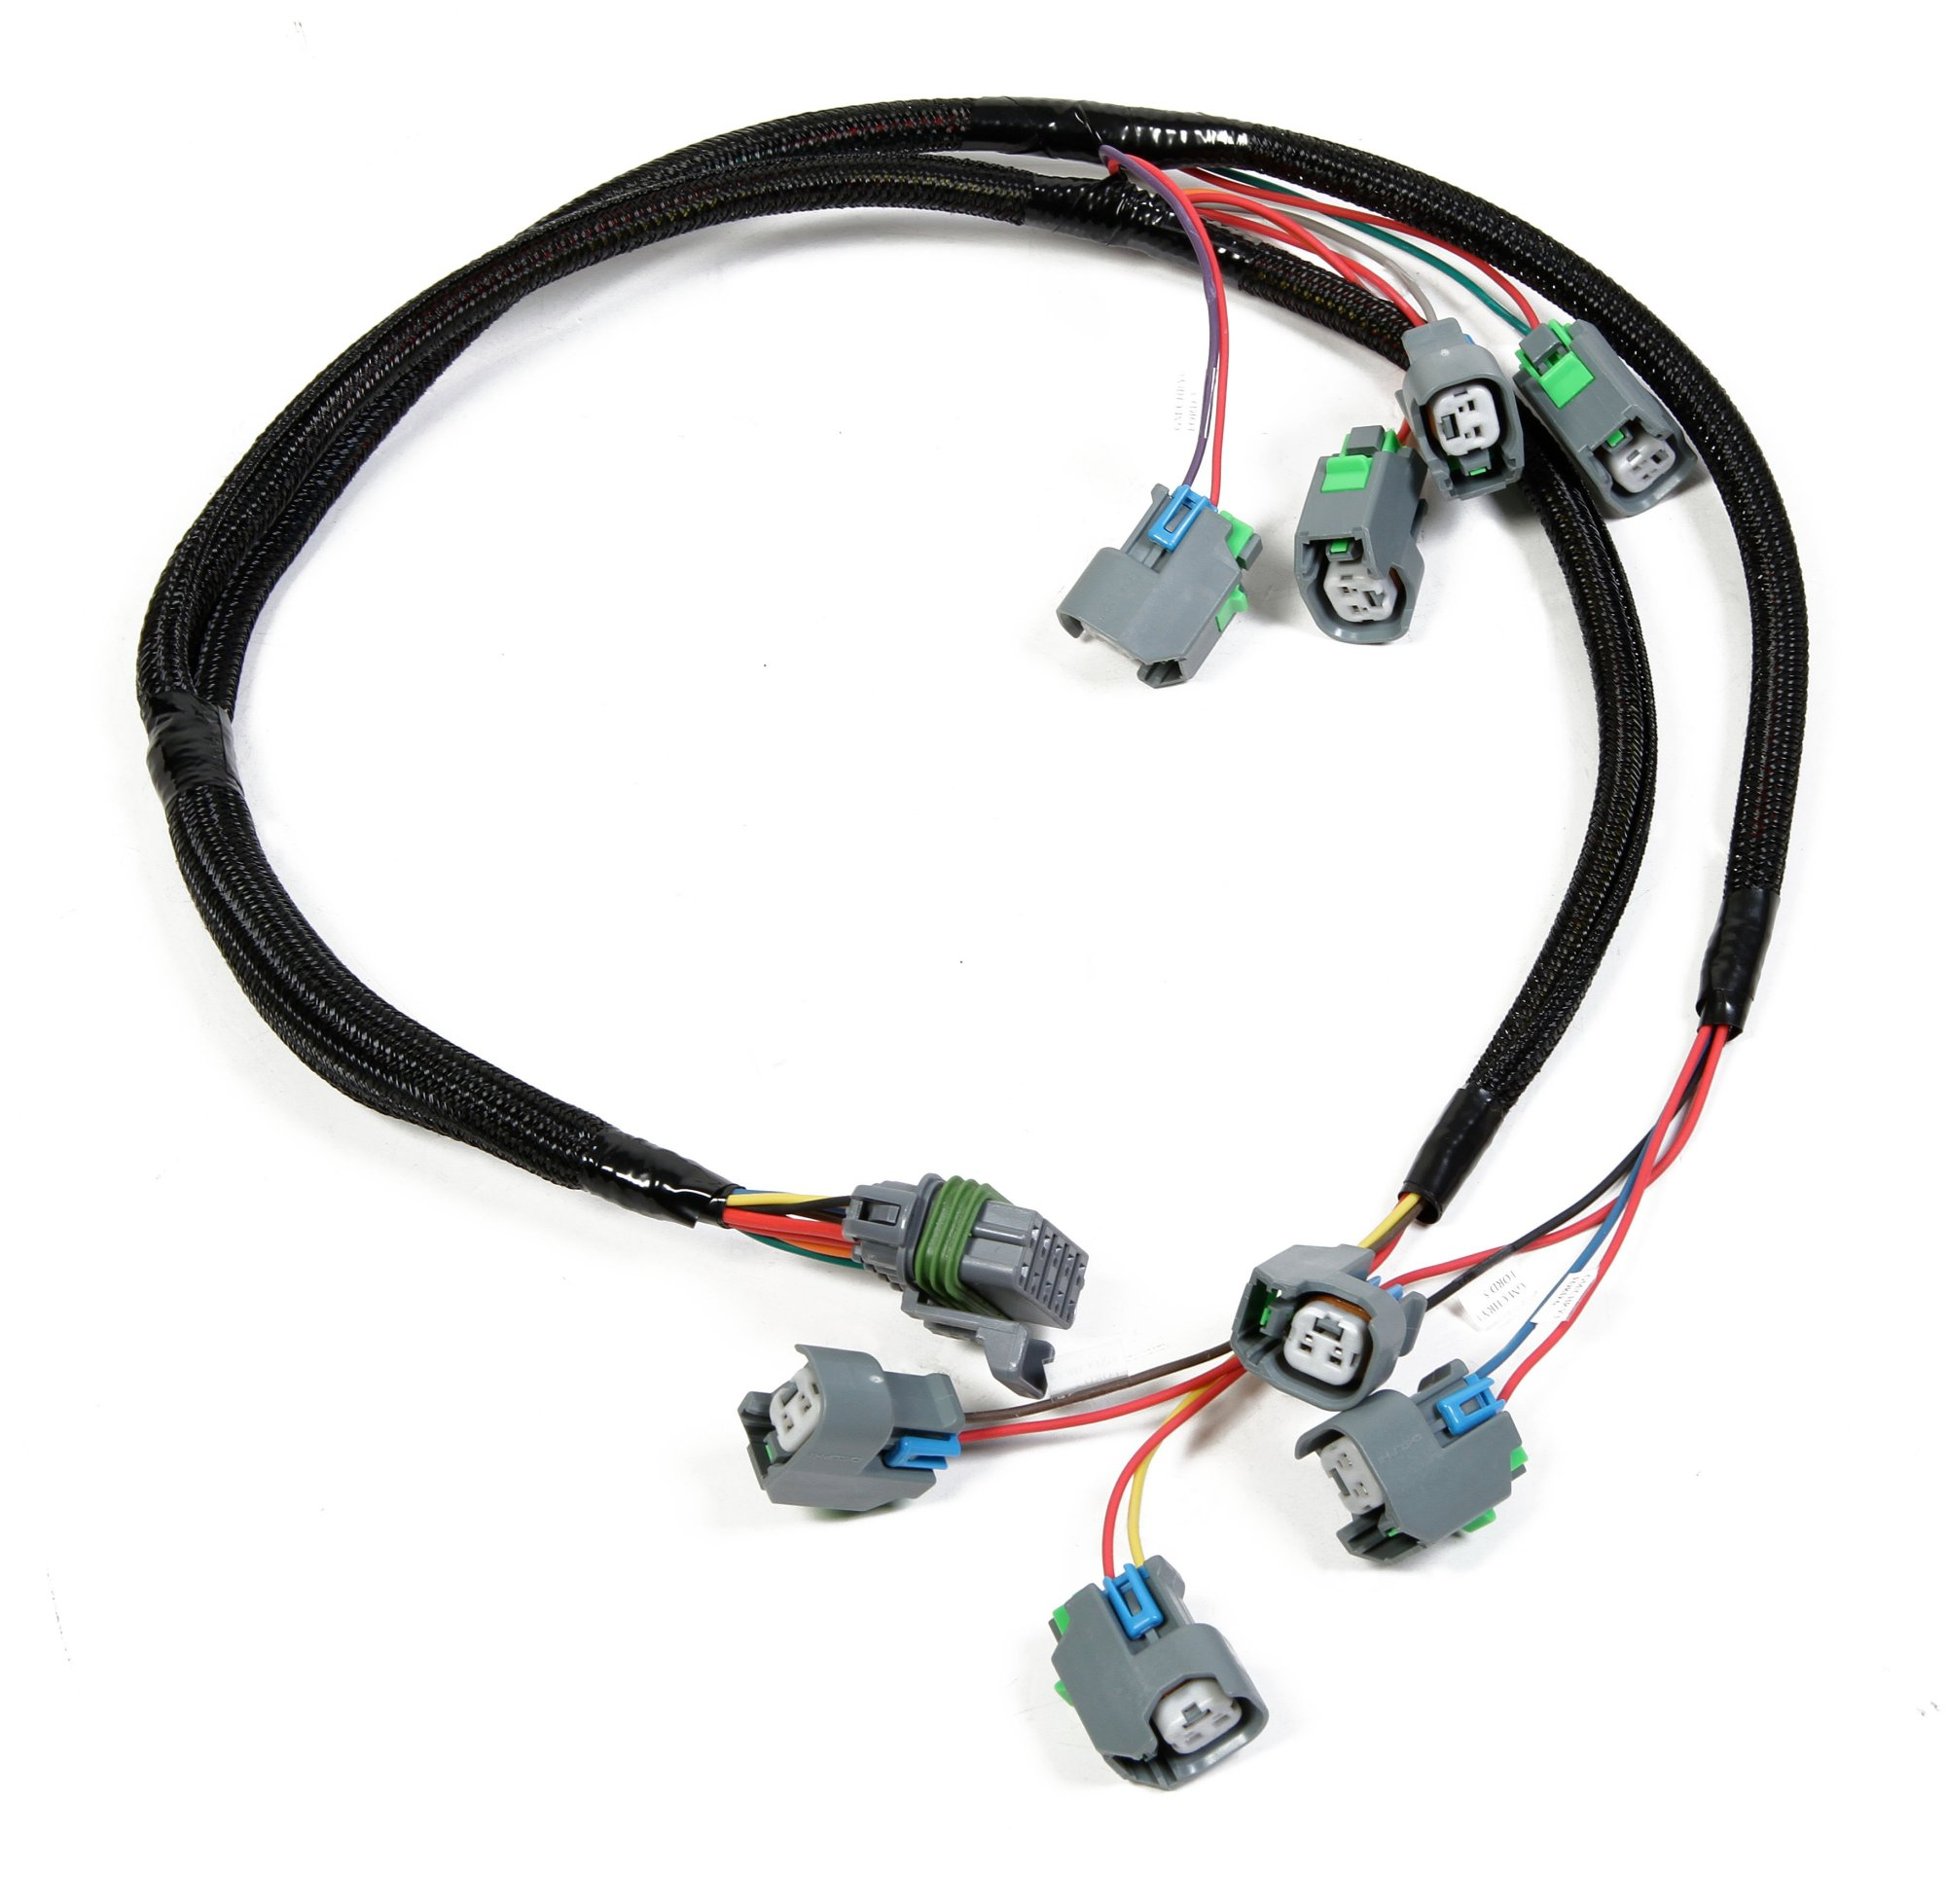 hight resolution of 558 201 lsx injector harness for ev6 style injectors image